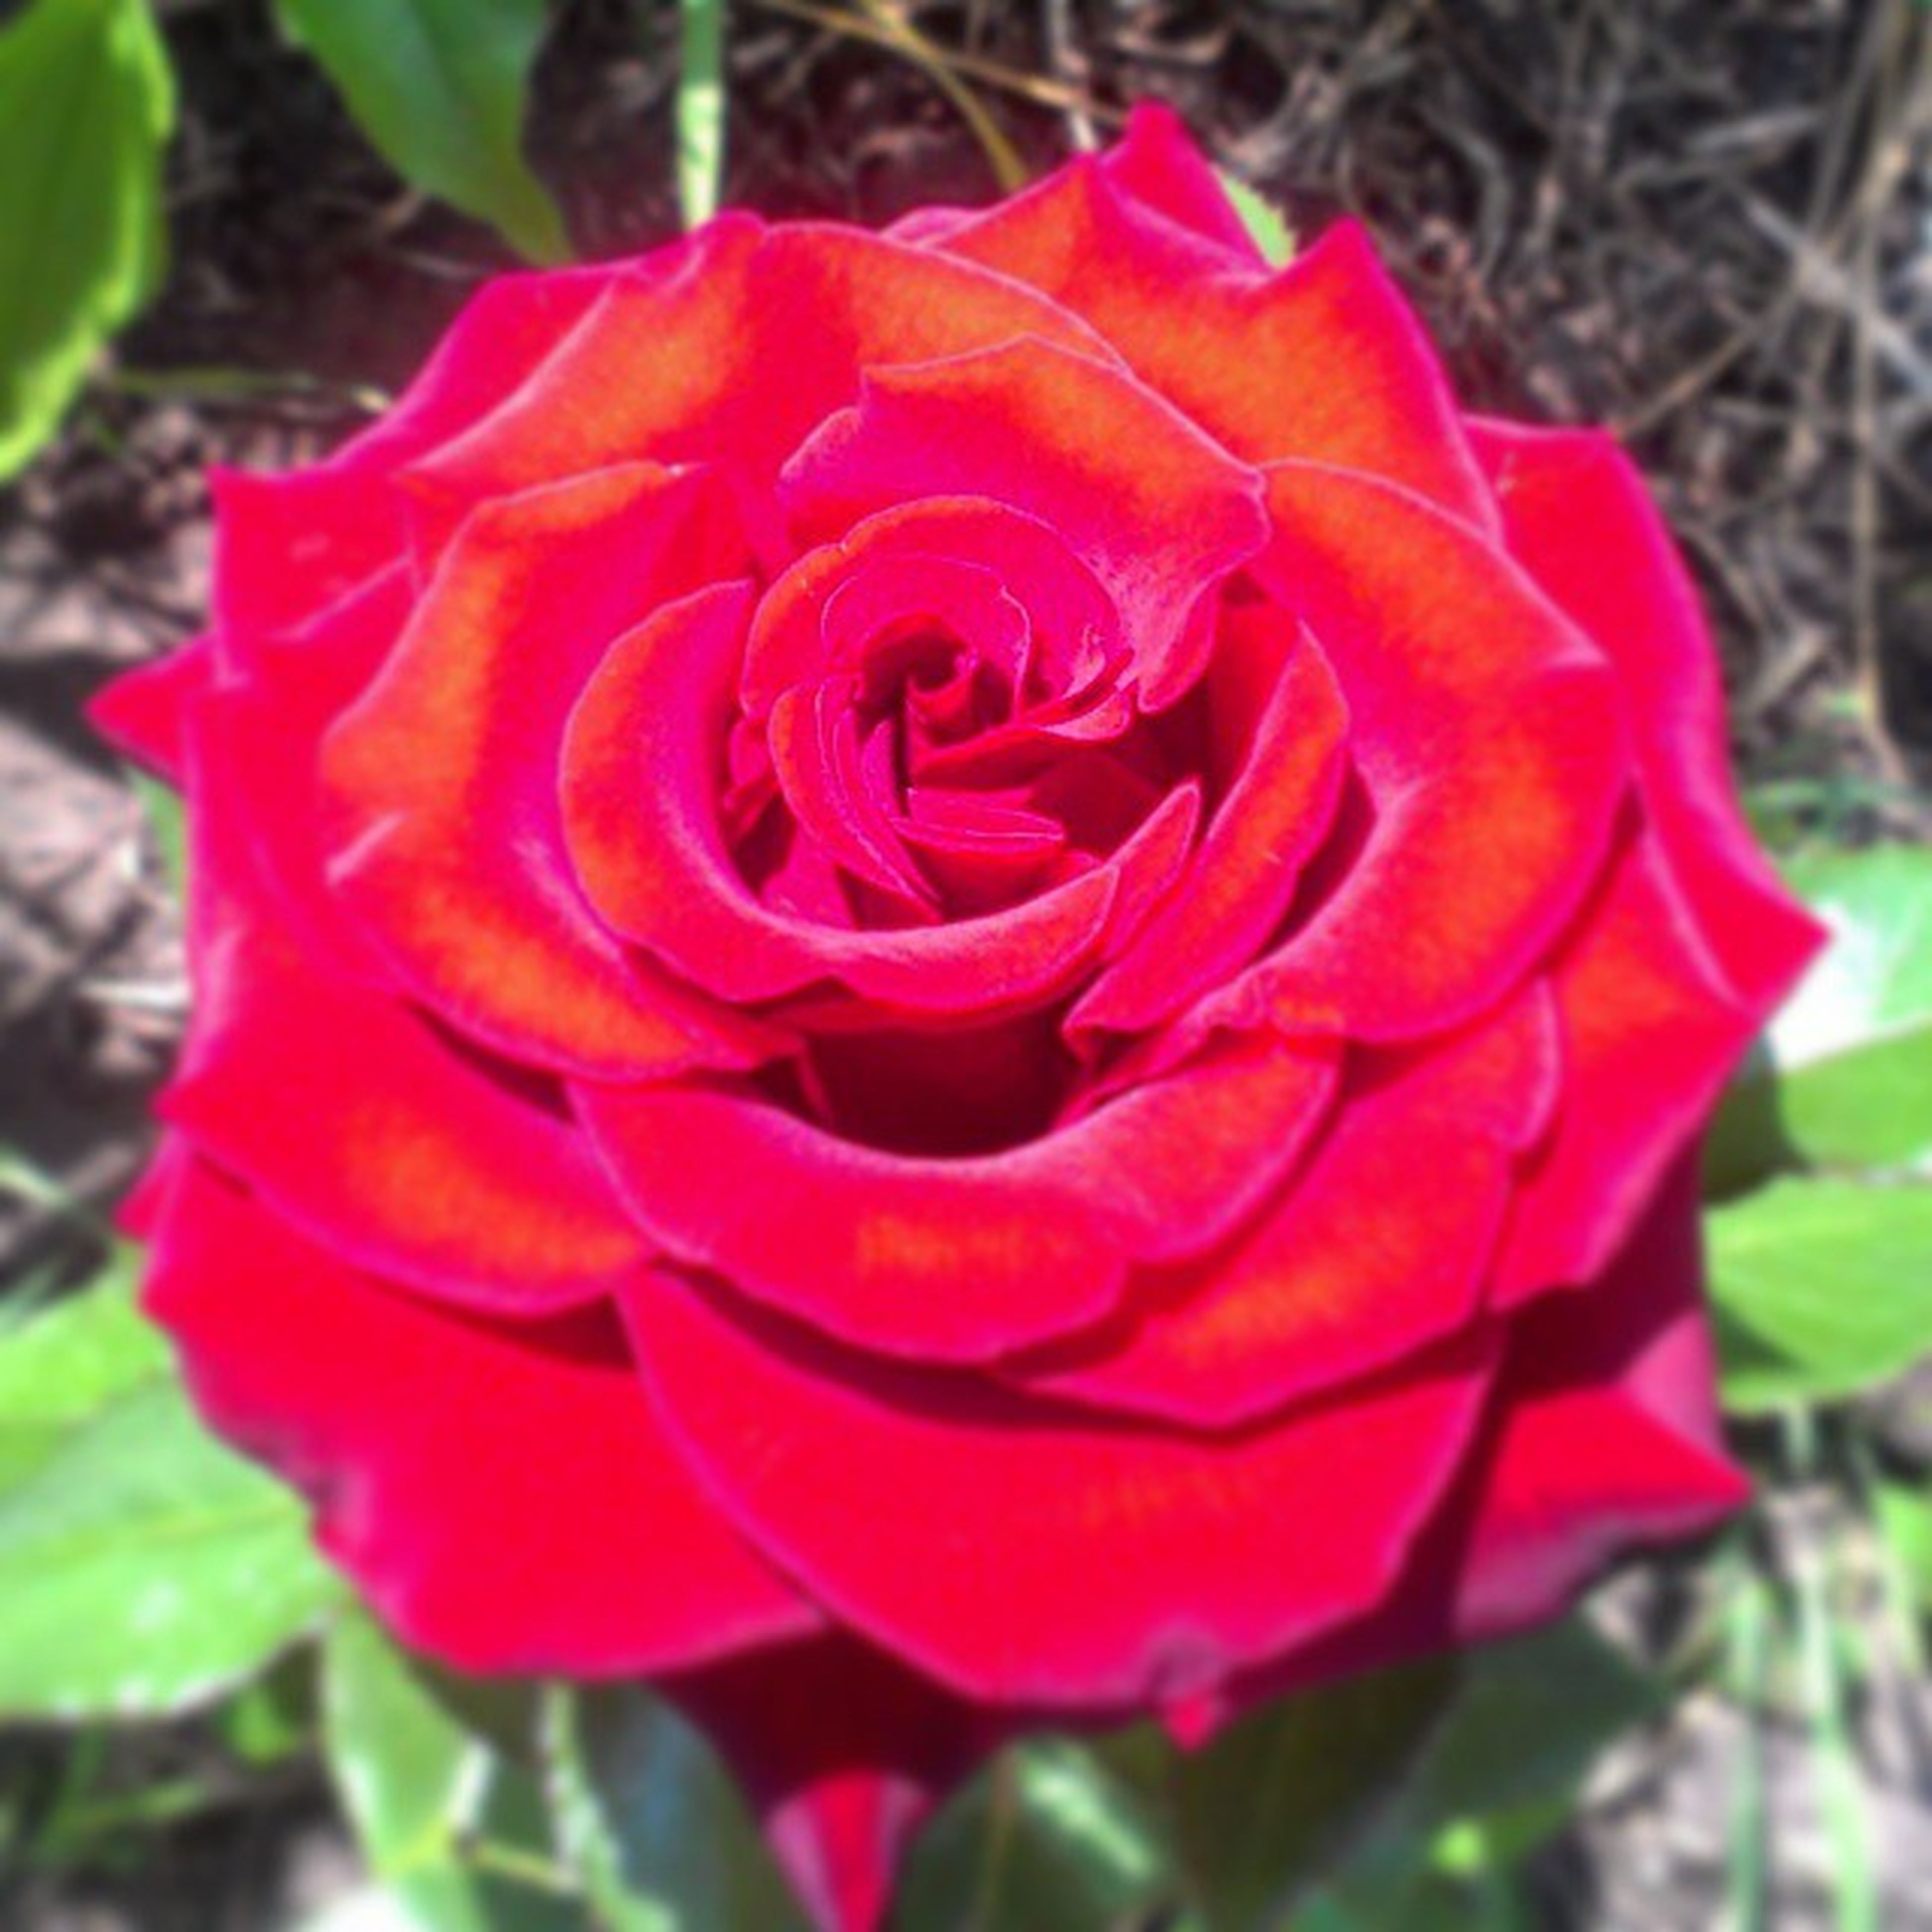 flower, petal, flower head, freshness, fragility, growth, close-up, beauty in nature, rose - flower, single flower, focus on foreground, red, blooming, nature, plant, in bloom, rose, day, outdoors, no people